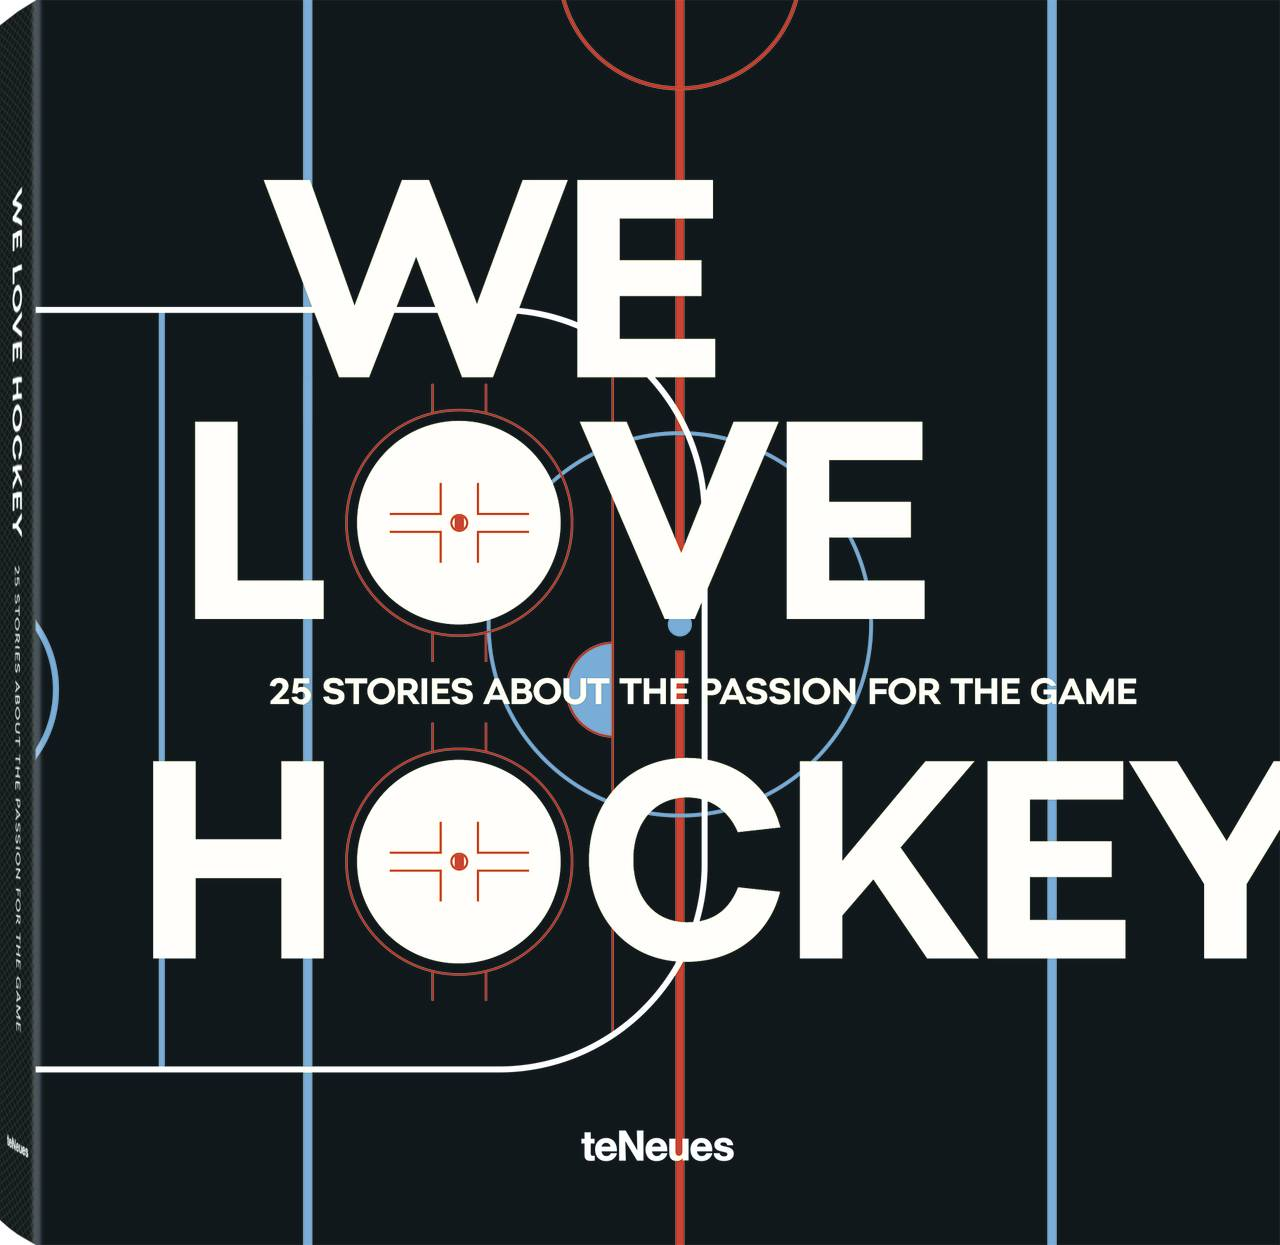 © WE LOVE HOCKEY, published by teNeues, www.teneues.com © ŠKODA AUTO a.s.